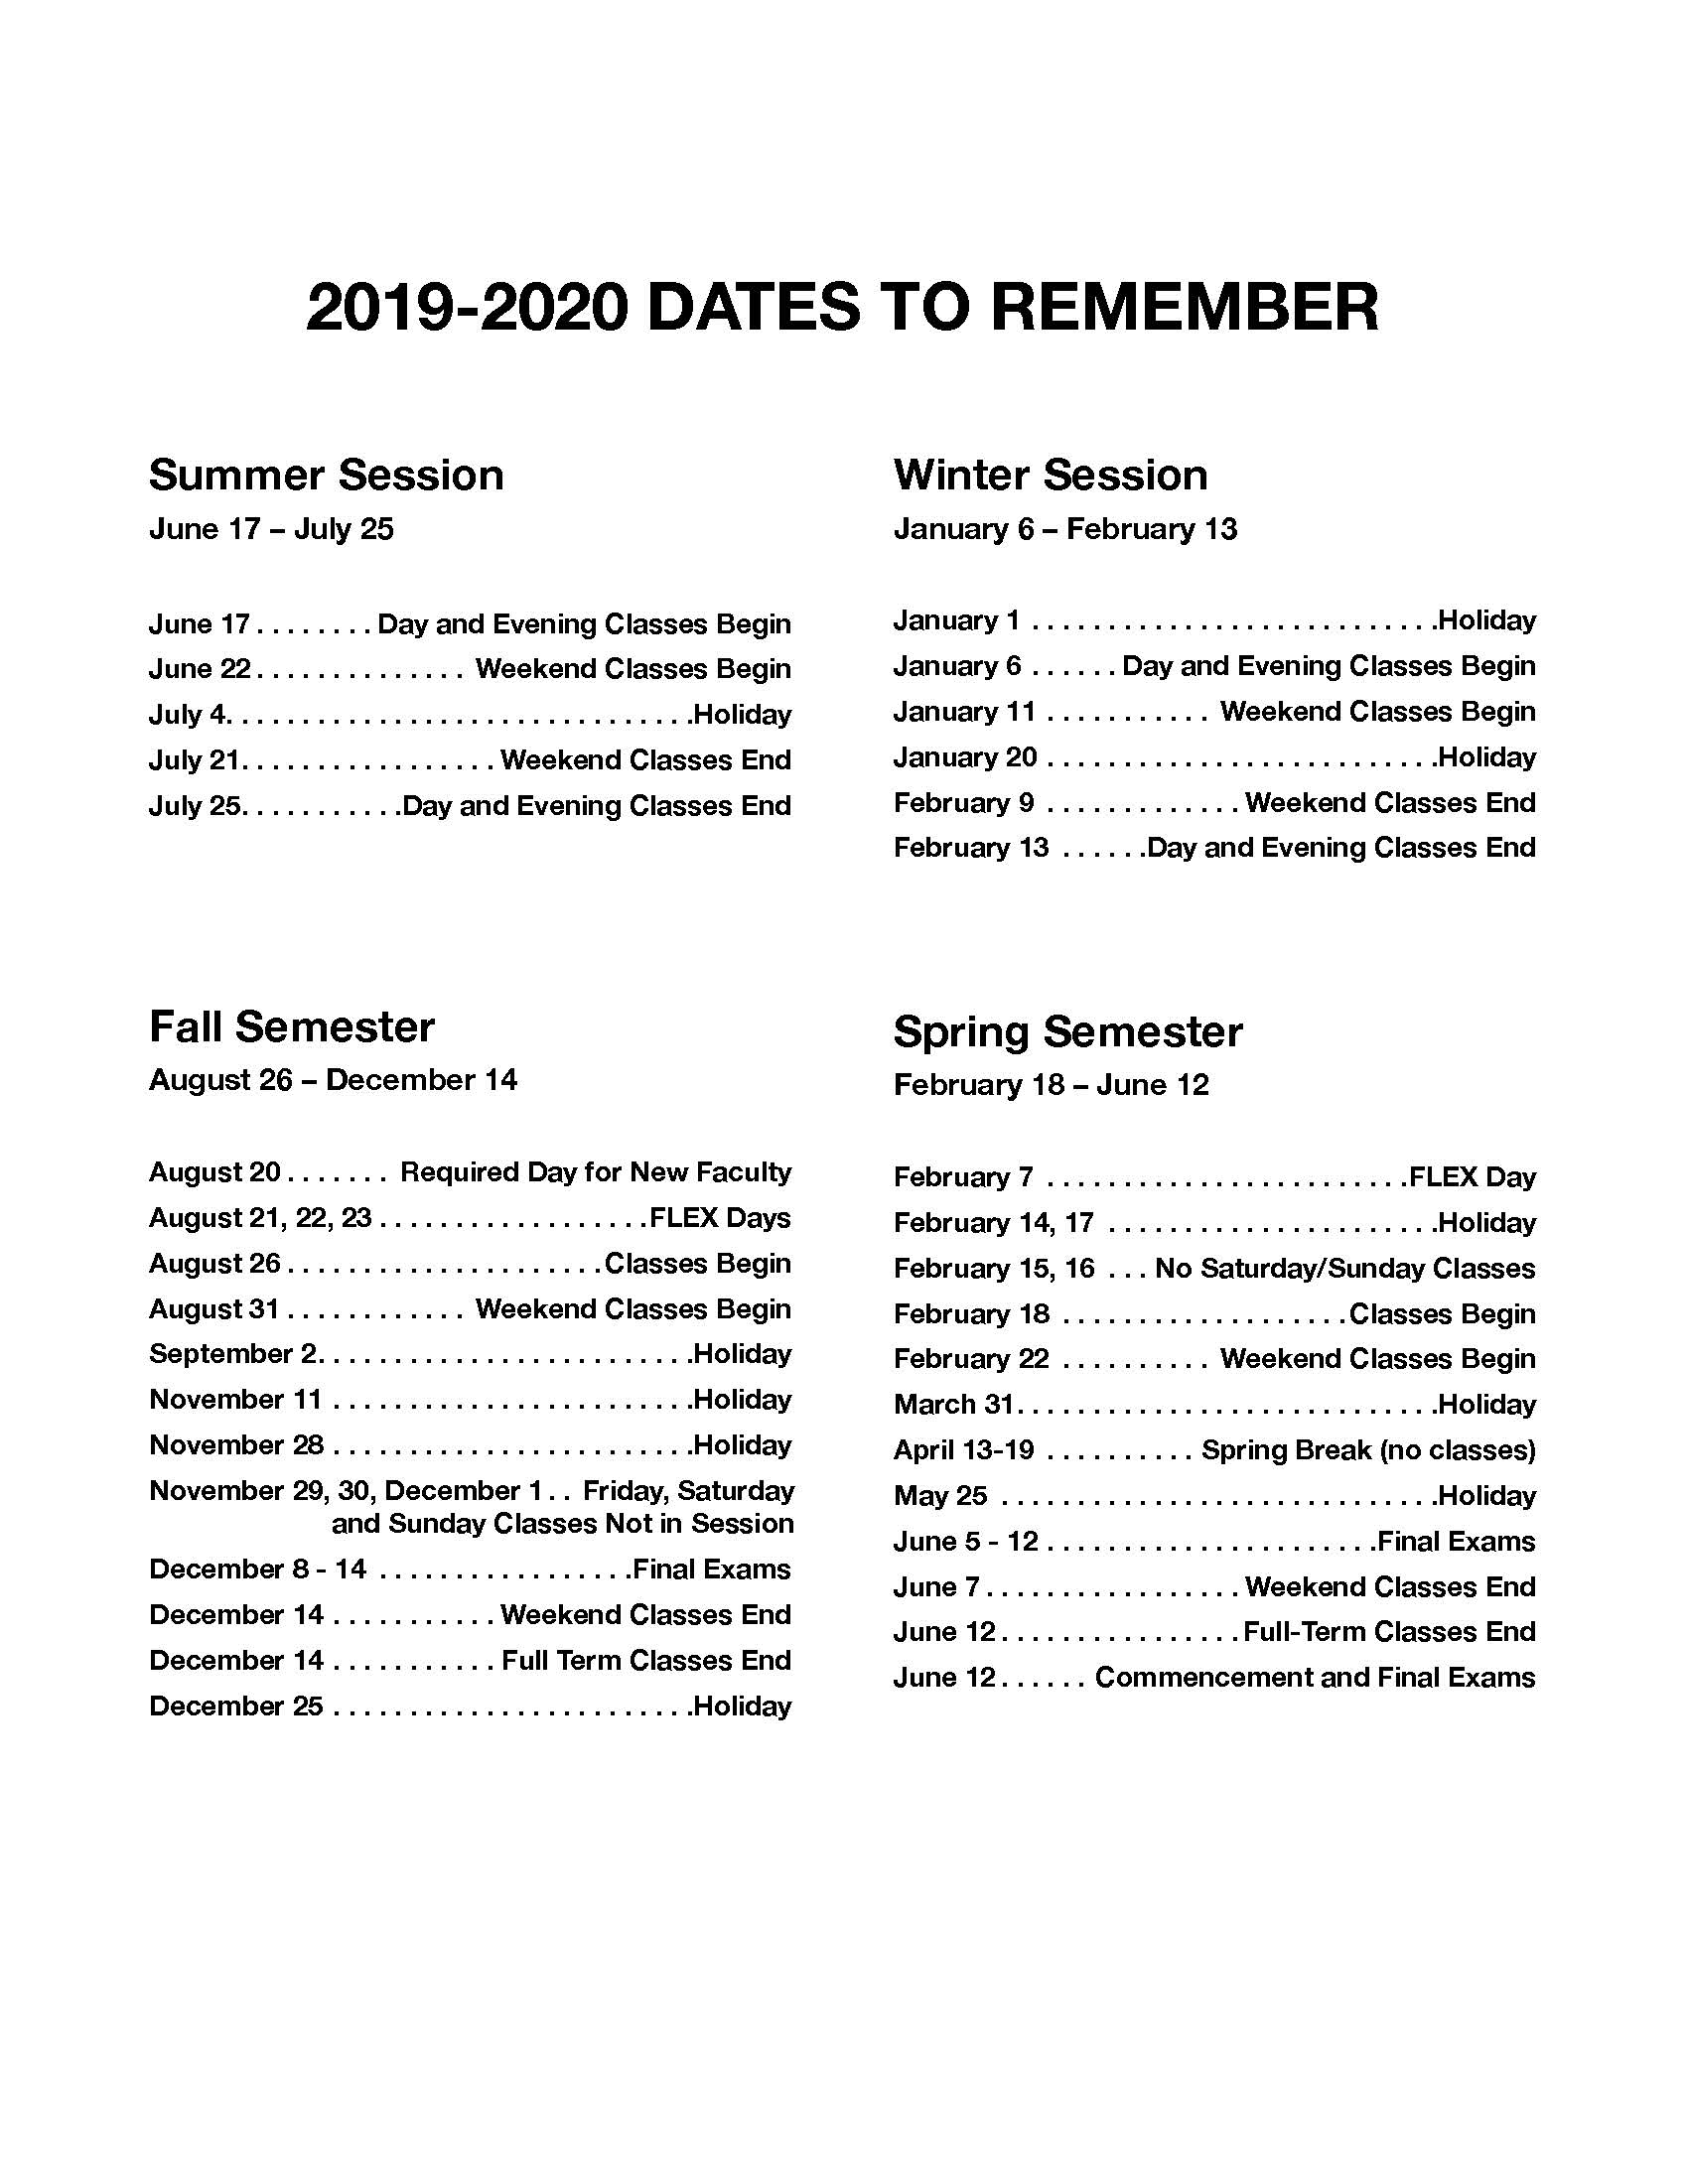 Jfk And Norco College Calendar 2019 2020 – John F. Kennedy Pertaining To Norco School District Calendar